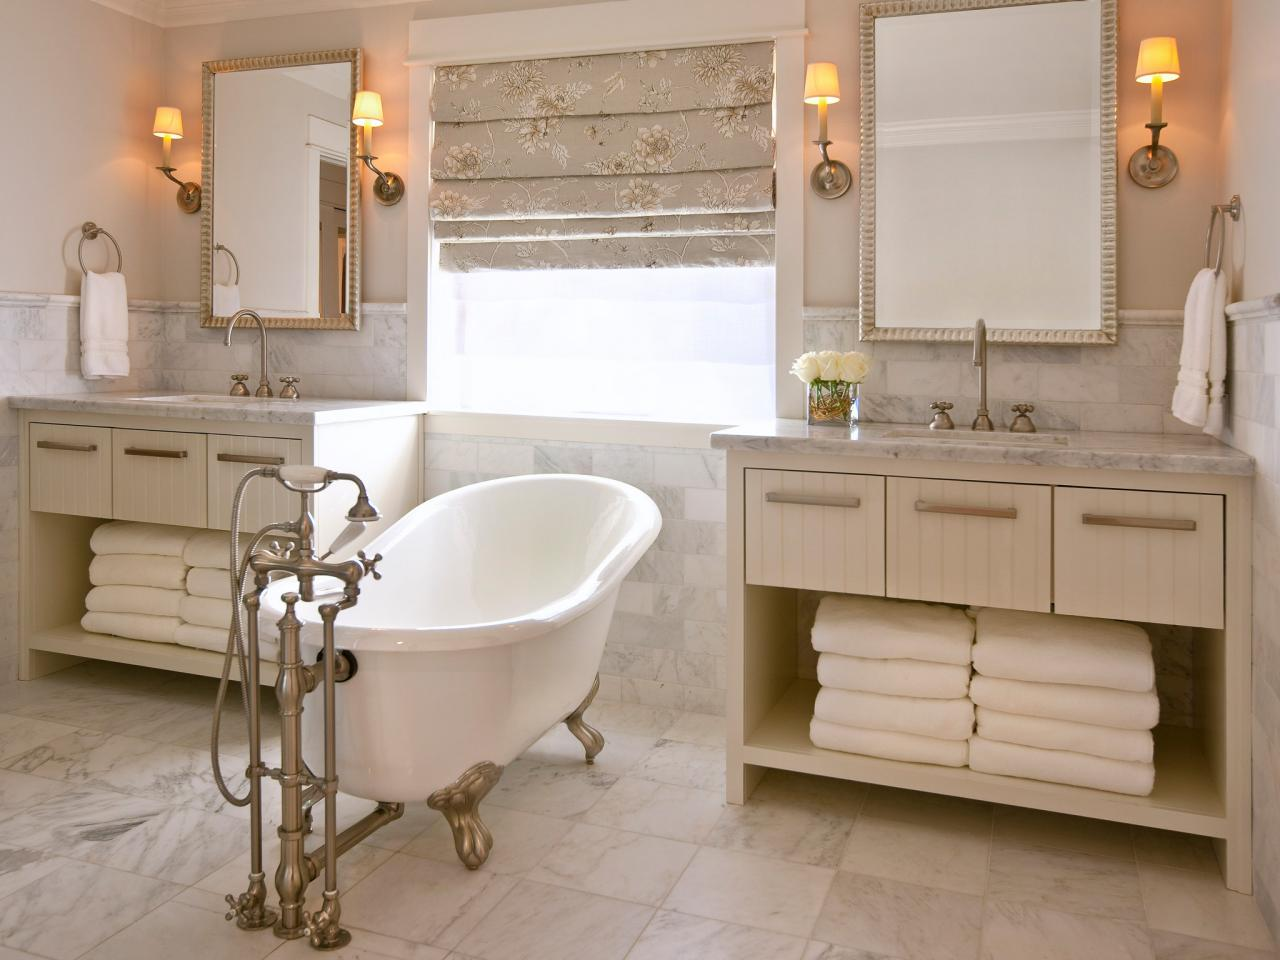 Pleasant Soaking Tub With Faucet Between Minimalist Cabinet For Bathroom Decor